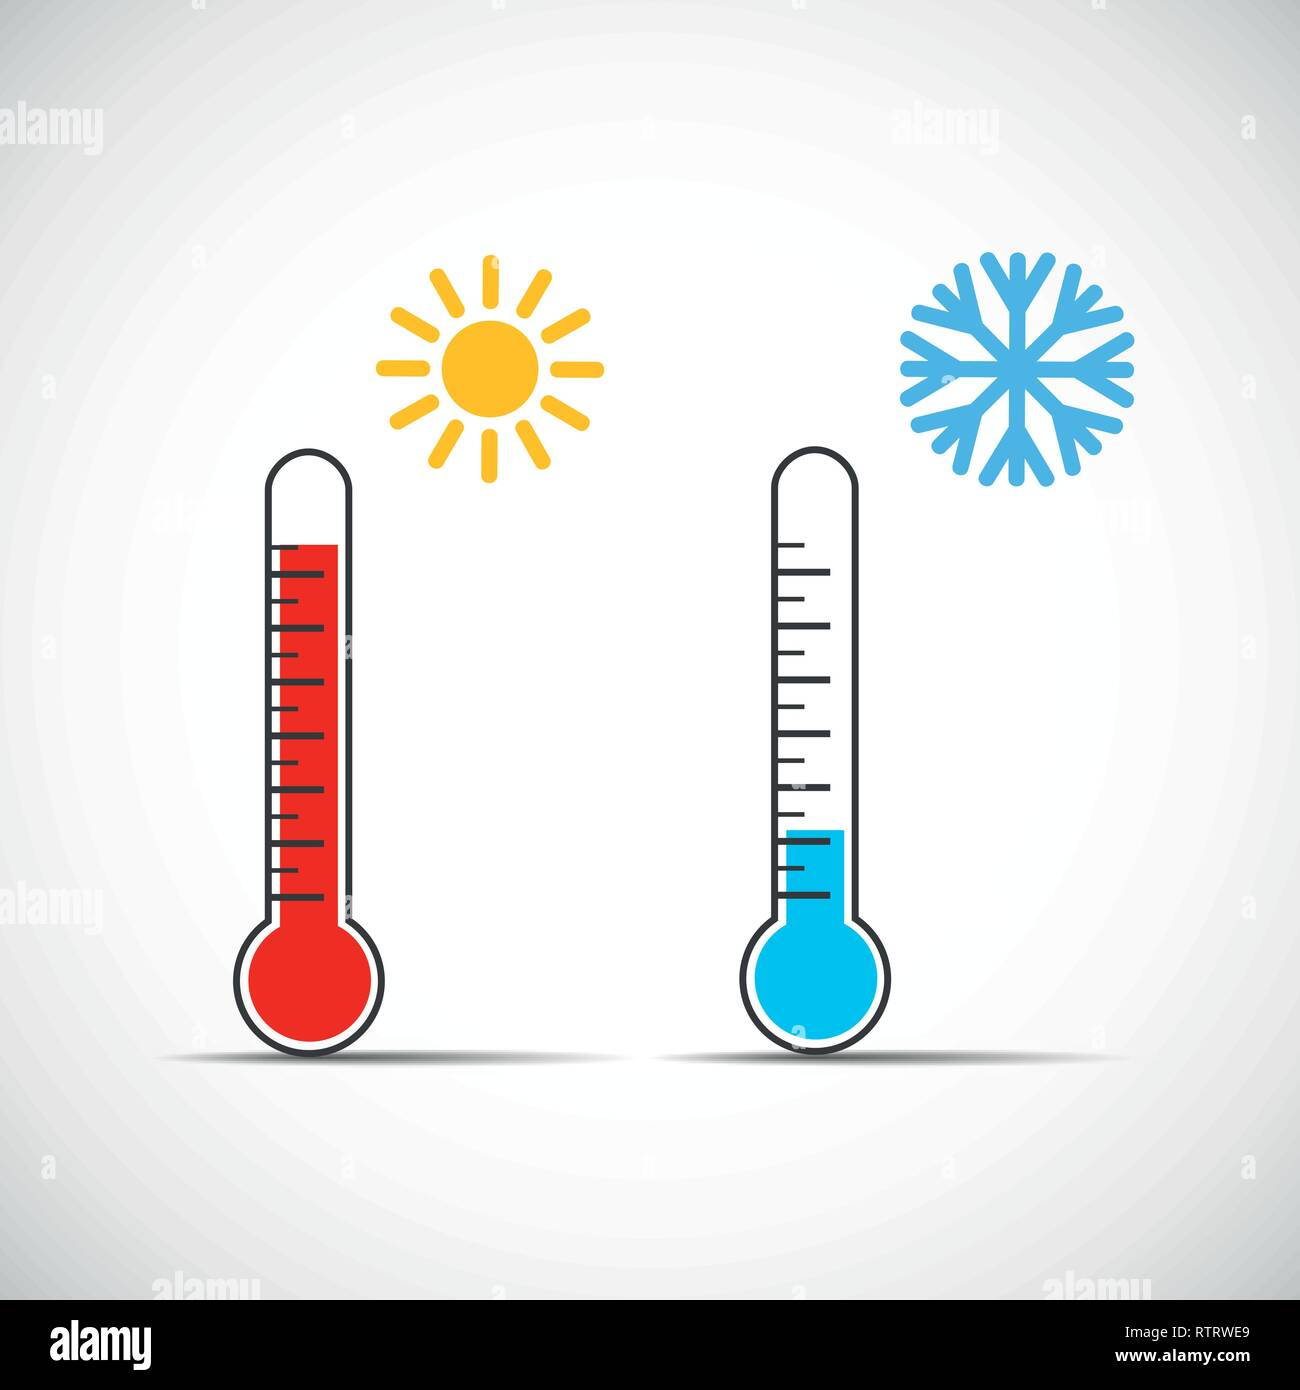 heat thermometer icon symbol hot cold weather vector illustration EPS10 - Stock Vector